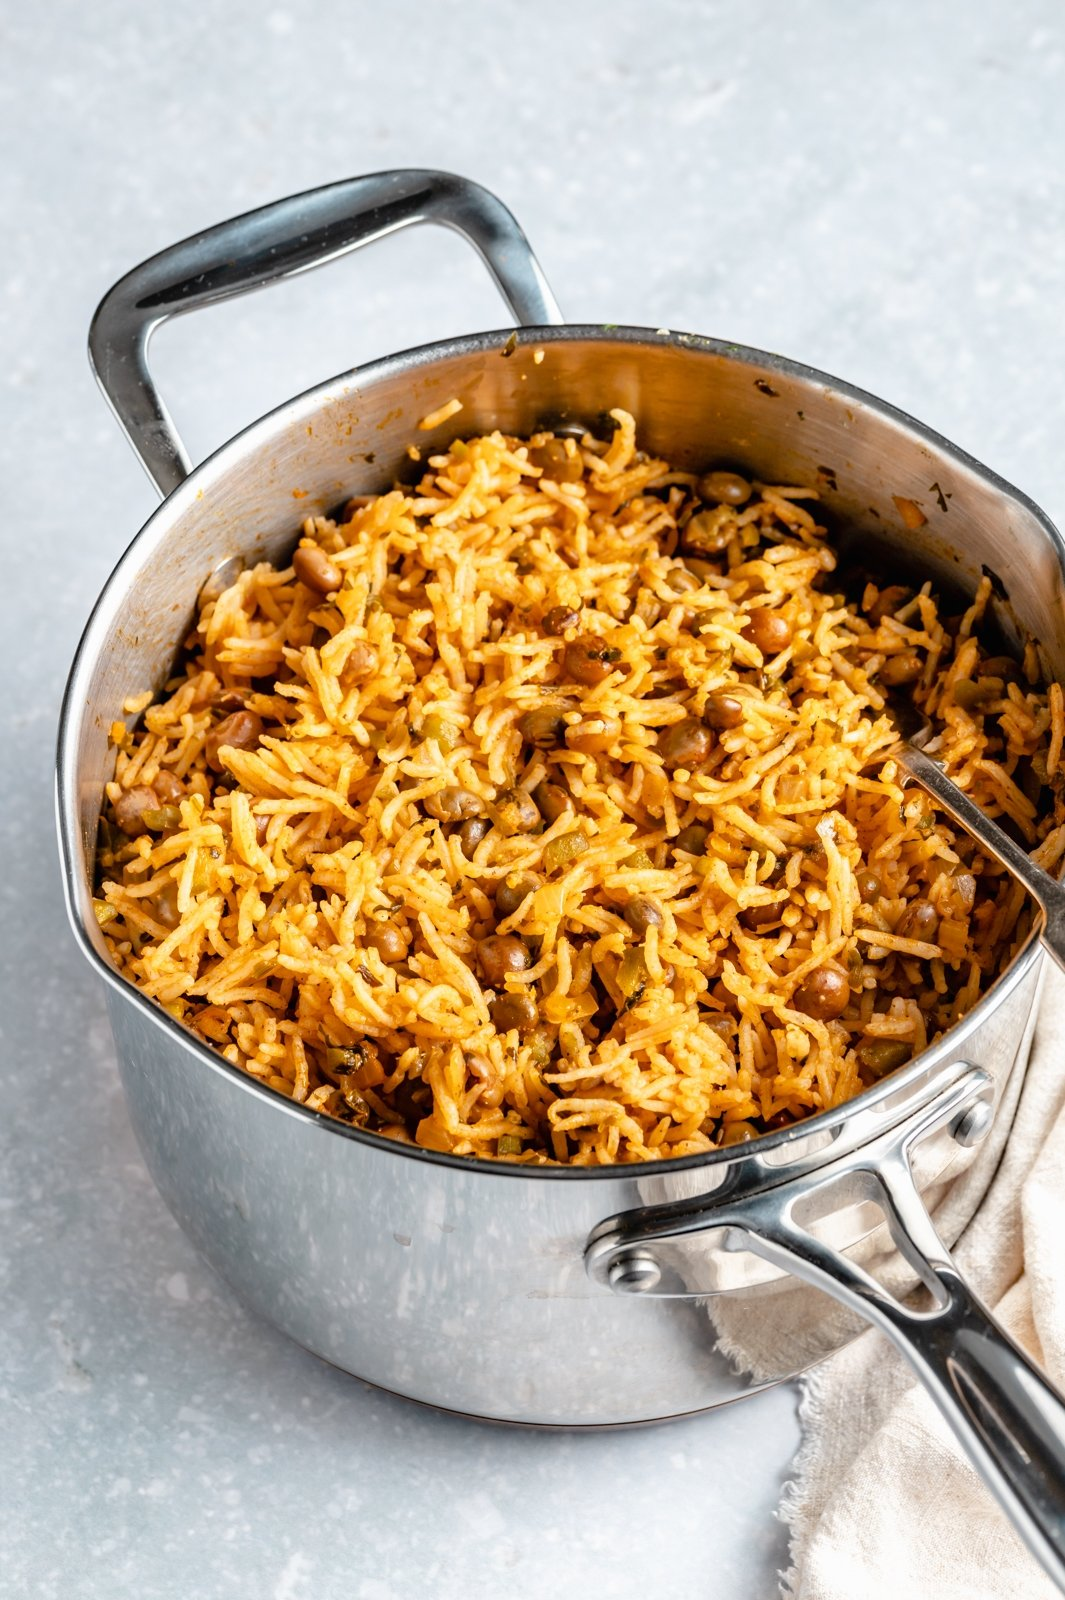 arroz con gandules in a pot